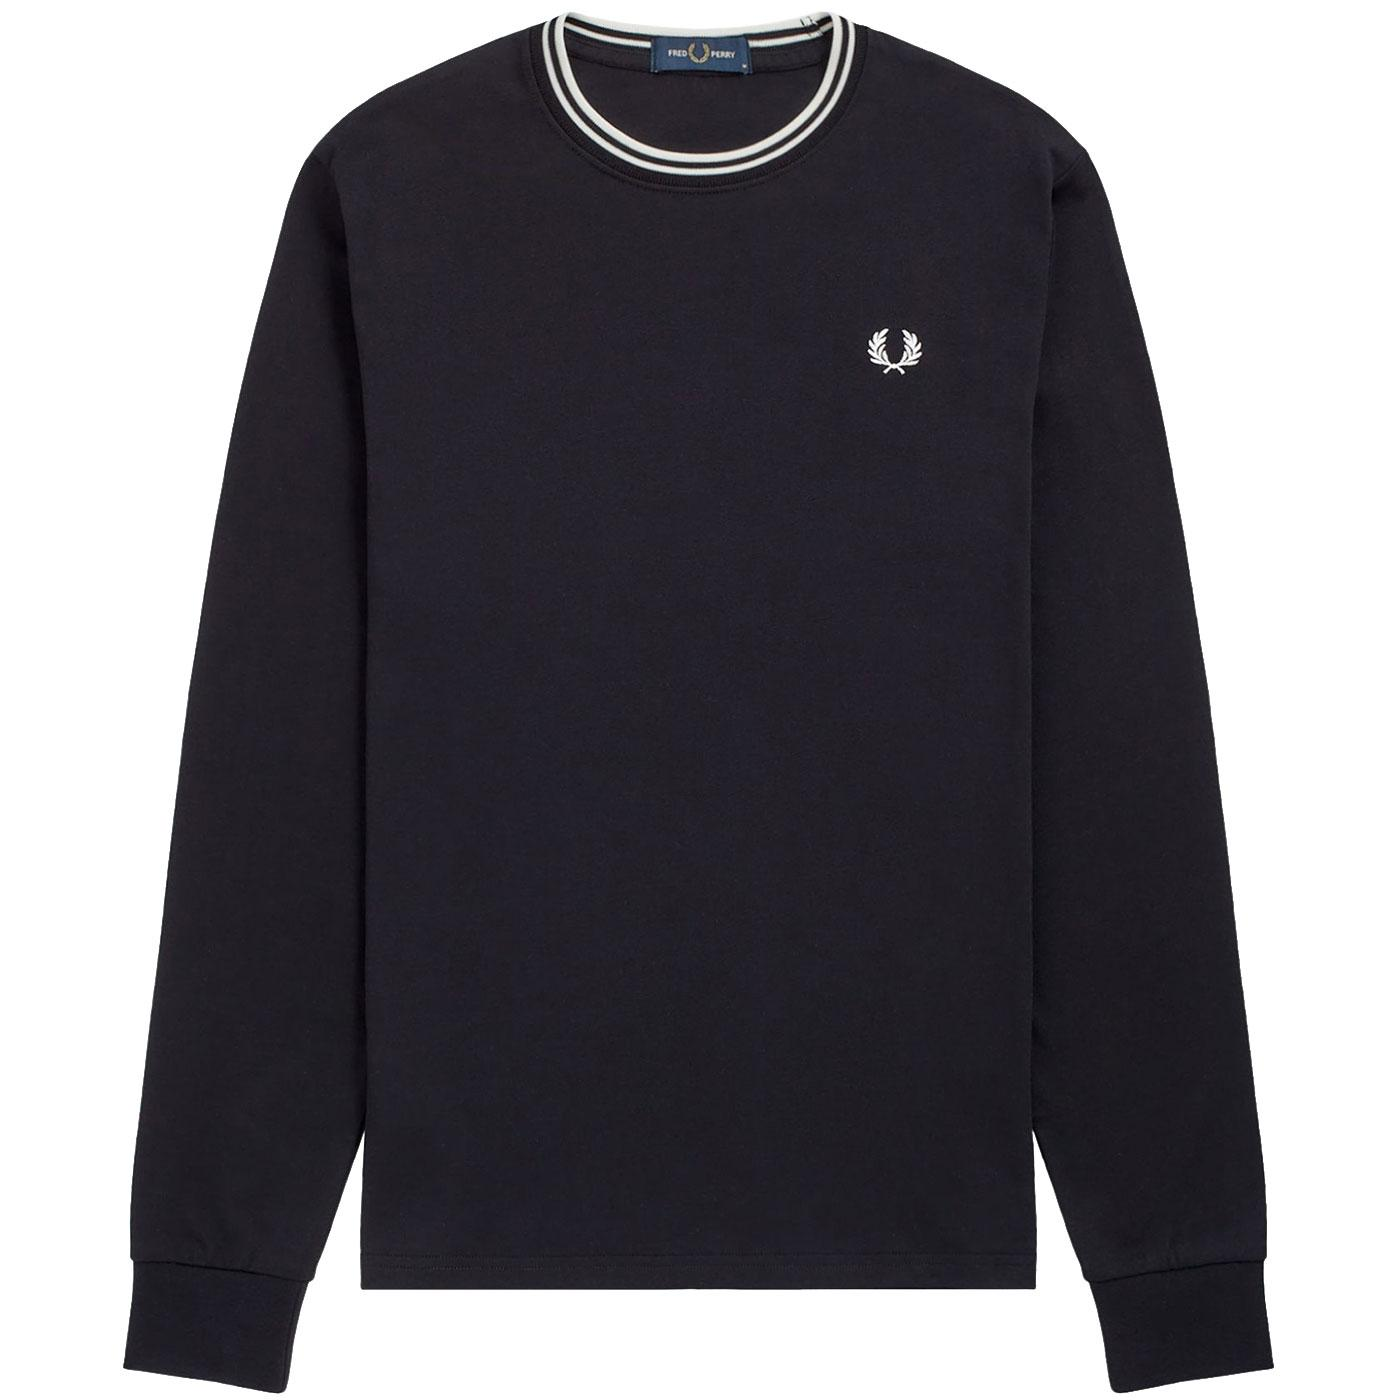 FRED PERRY Men's L/S Twin Tipped T-shirt BLACK